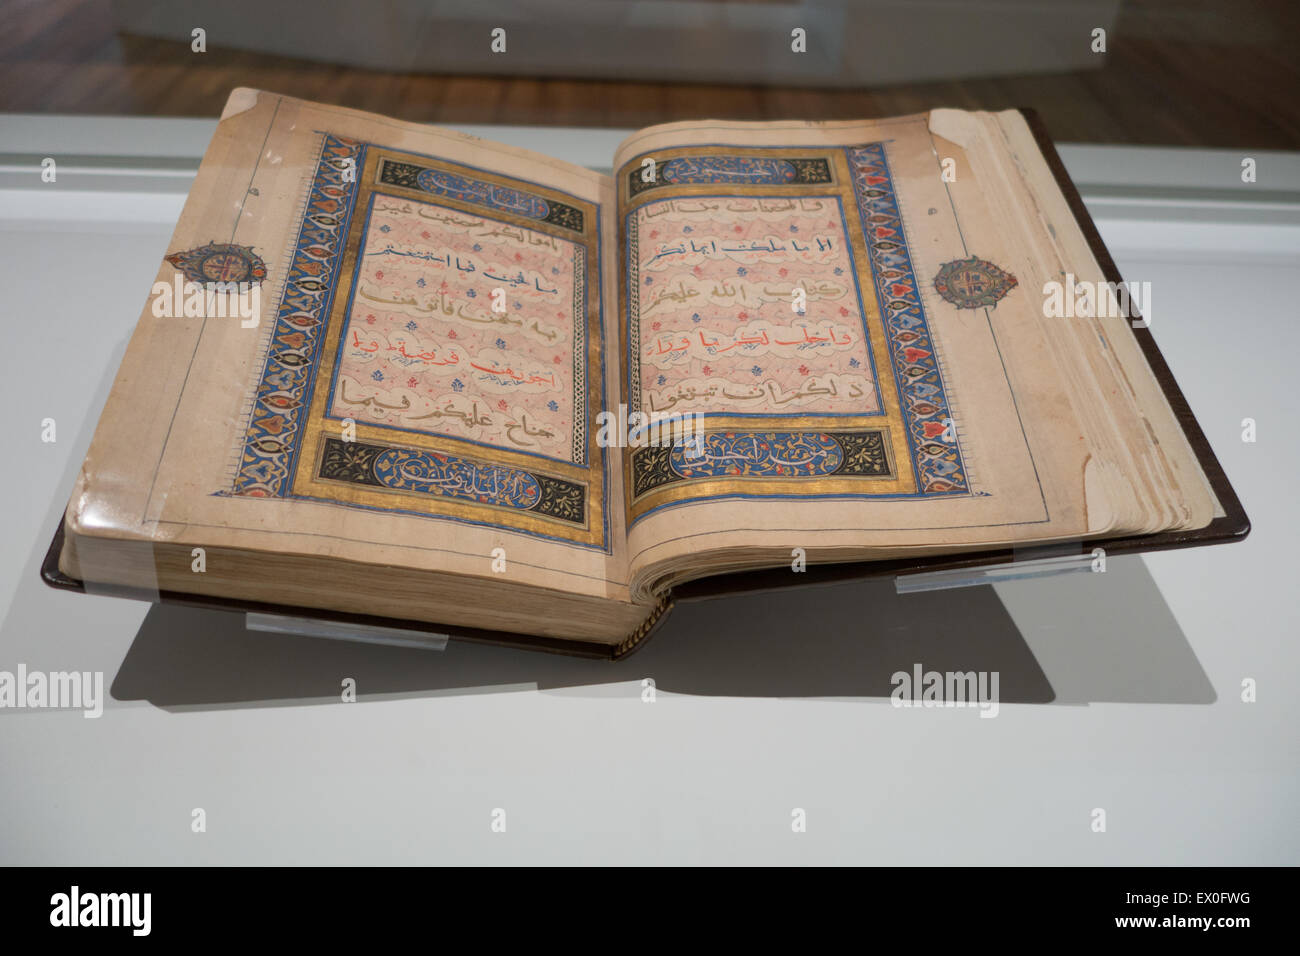 Quran signed by Mahmud Sha'ban in the fortresses of Galyur (Gwalior) Hindustan 4 July 1302 - Stock Image